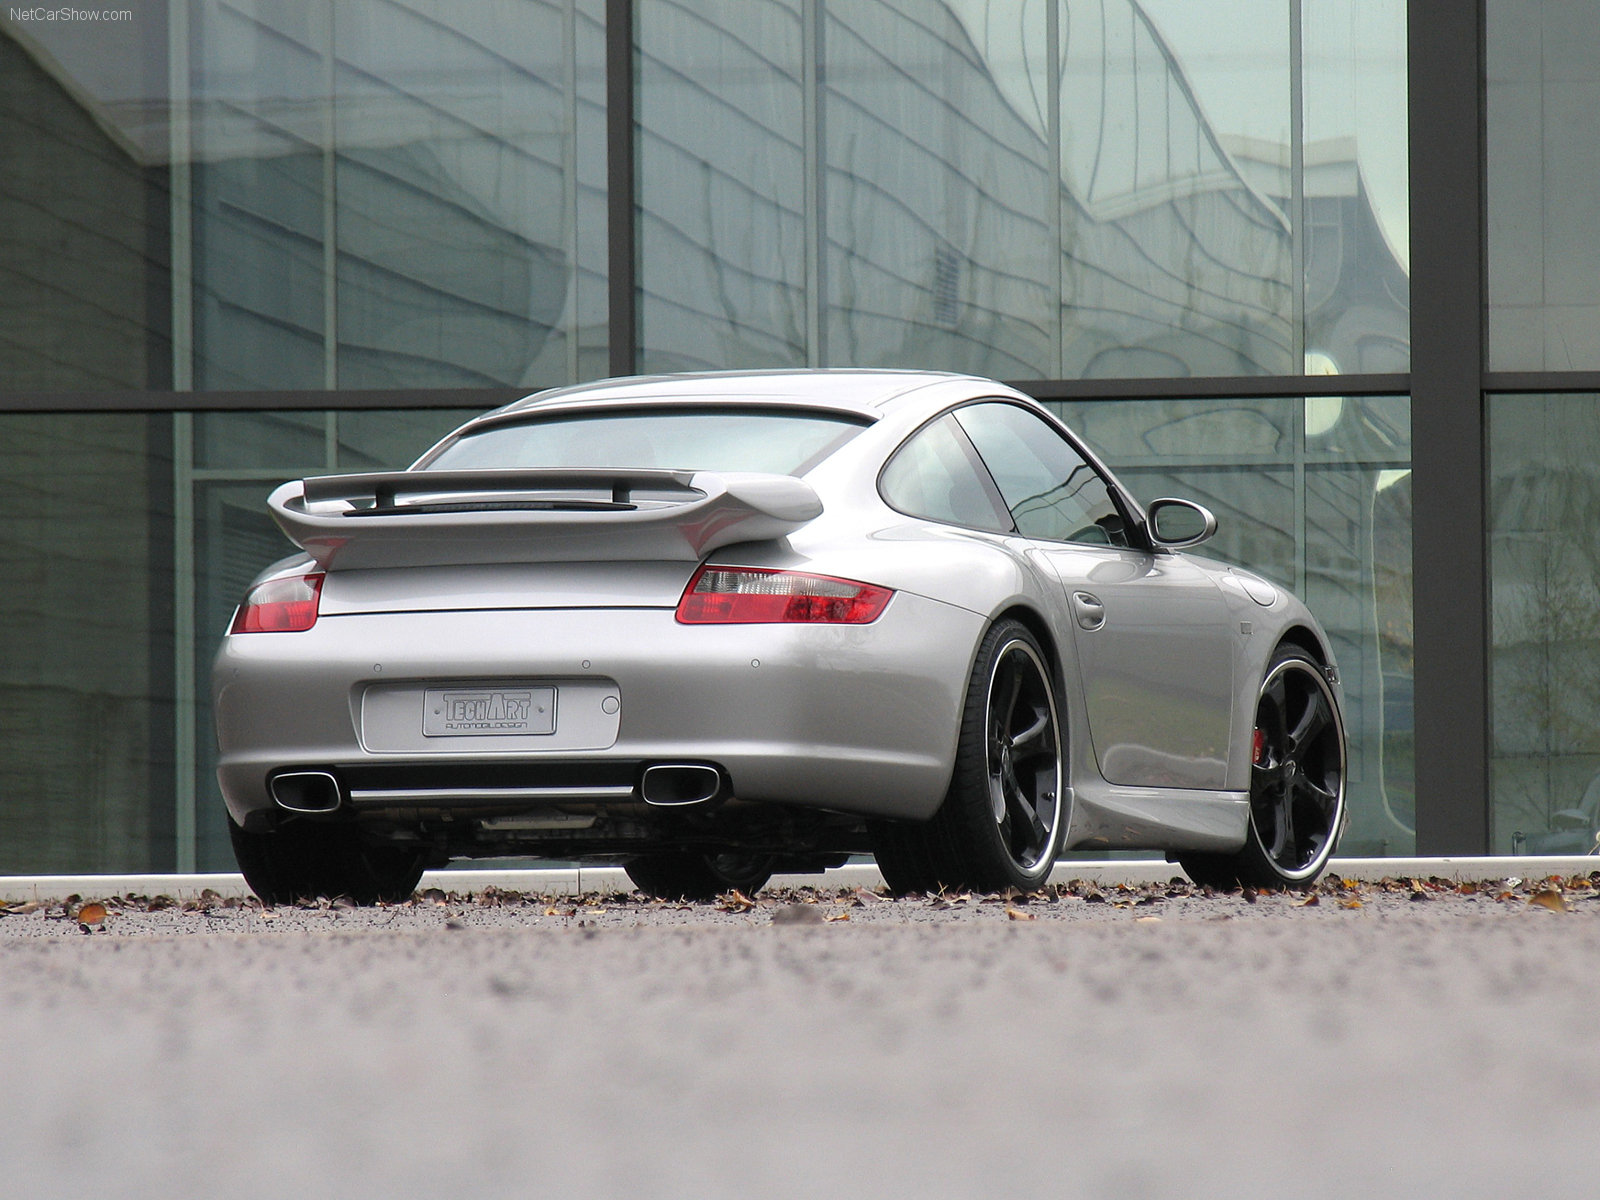 Techart Porsche 997 911 Carrera photo 64705